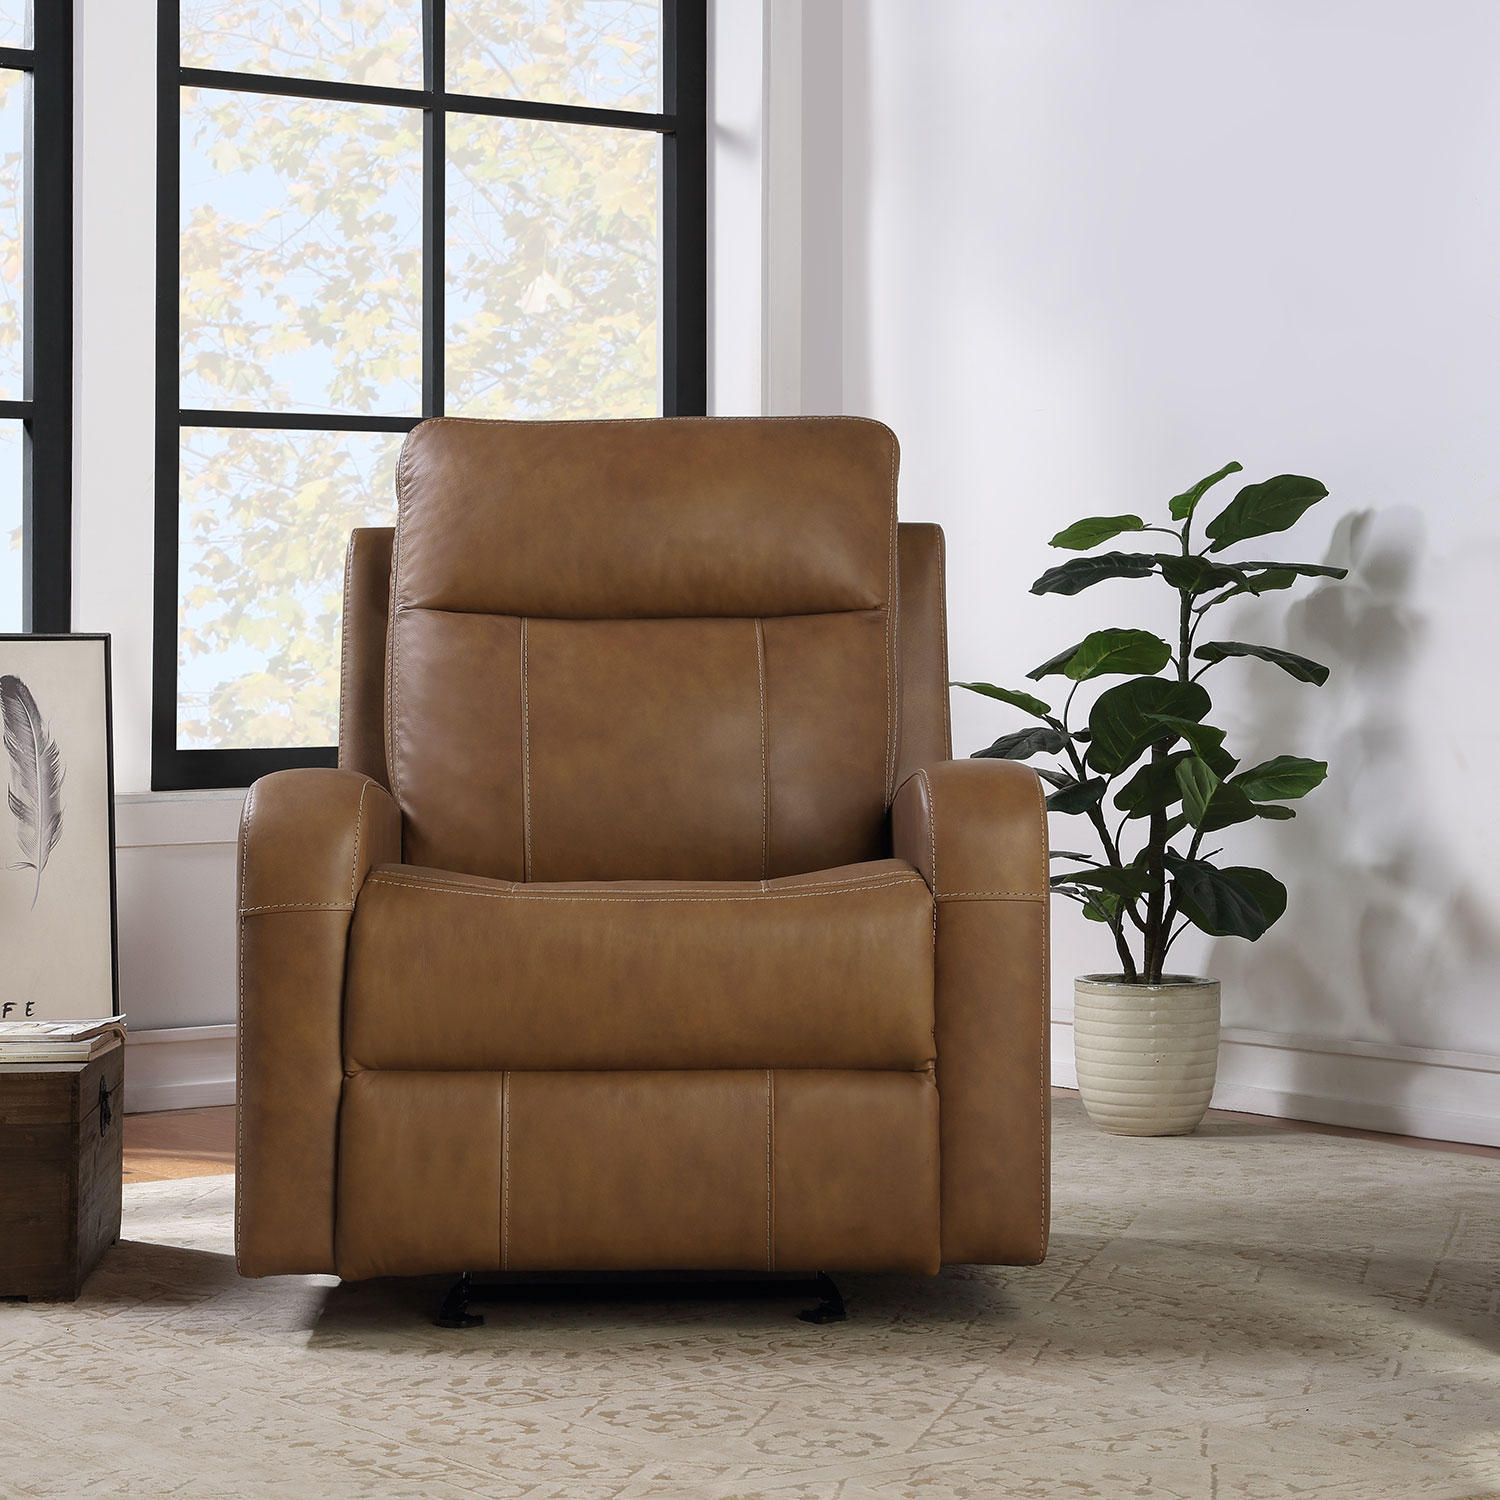 Travis Power Recline Home Theater Seating Assorted Colors Sam S Club Recliner Glider Recliner Home Theater Seating